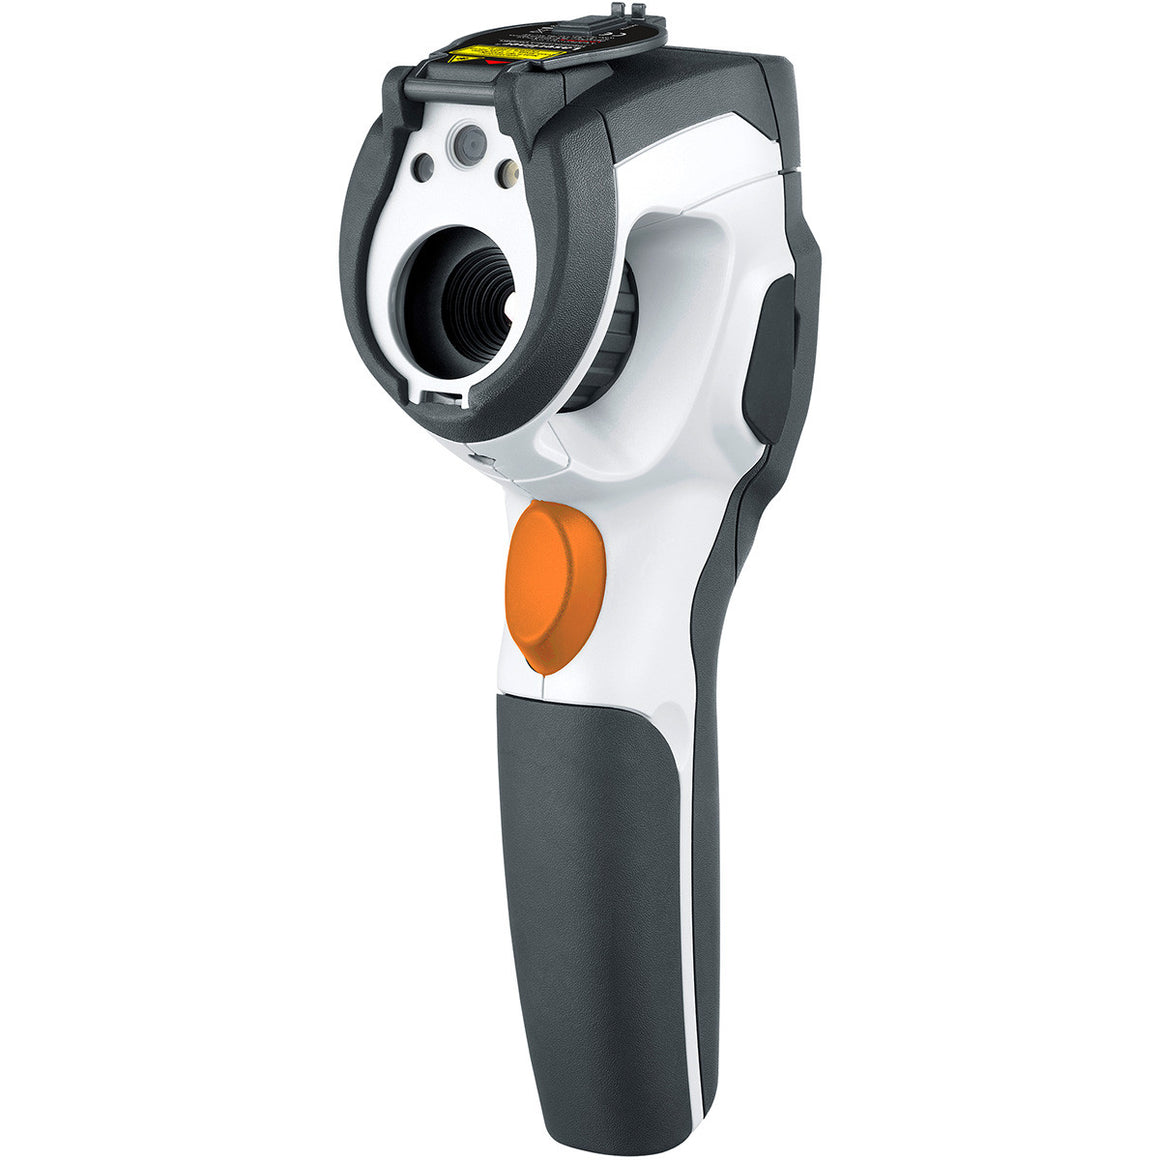 Thermal Imaging Camera - LaserLiner ThermoCamera Compact